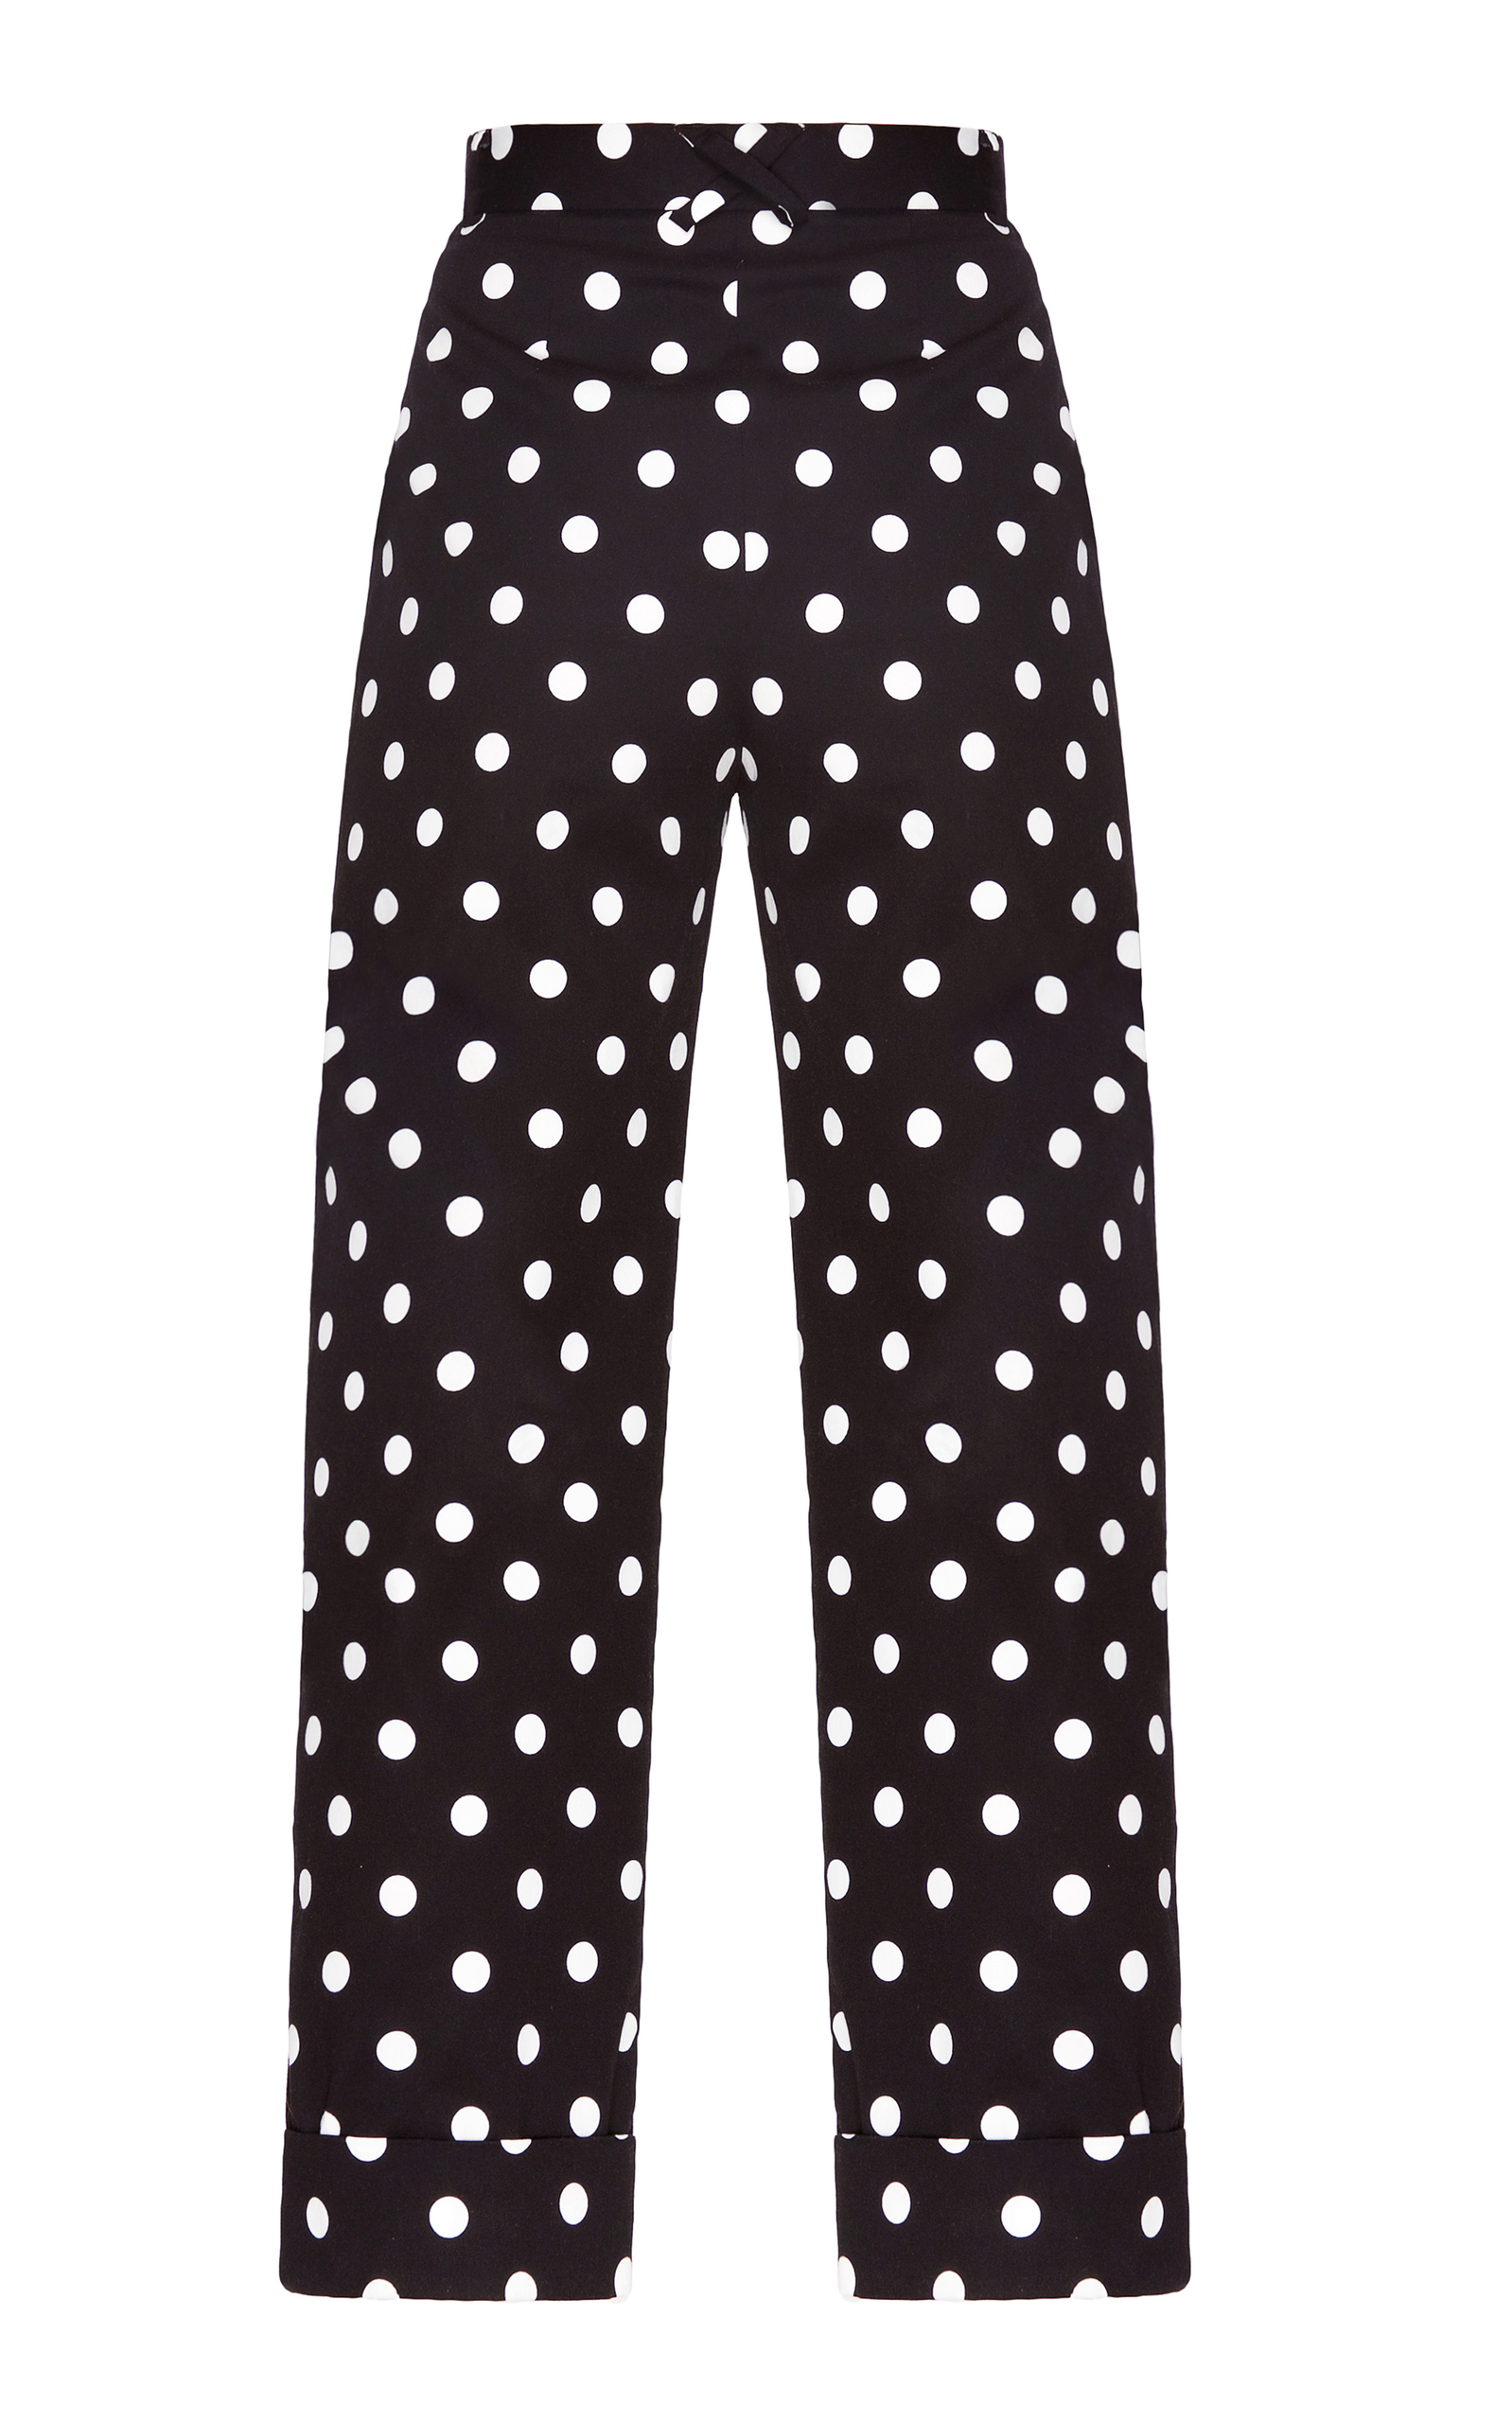 ade4e1660 High Waisted Polka Dot Pants